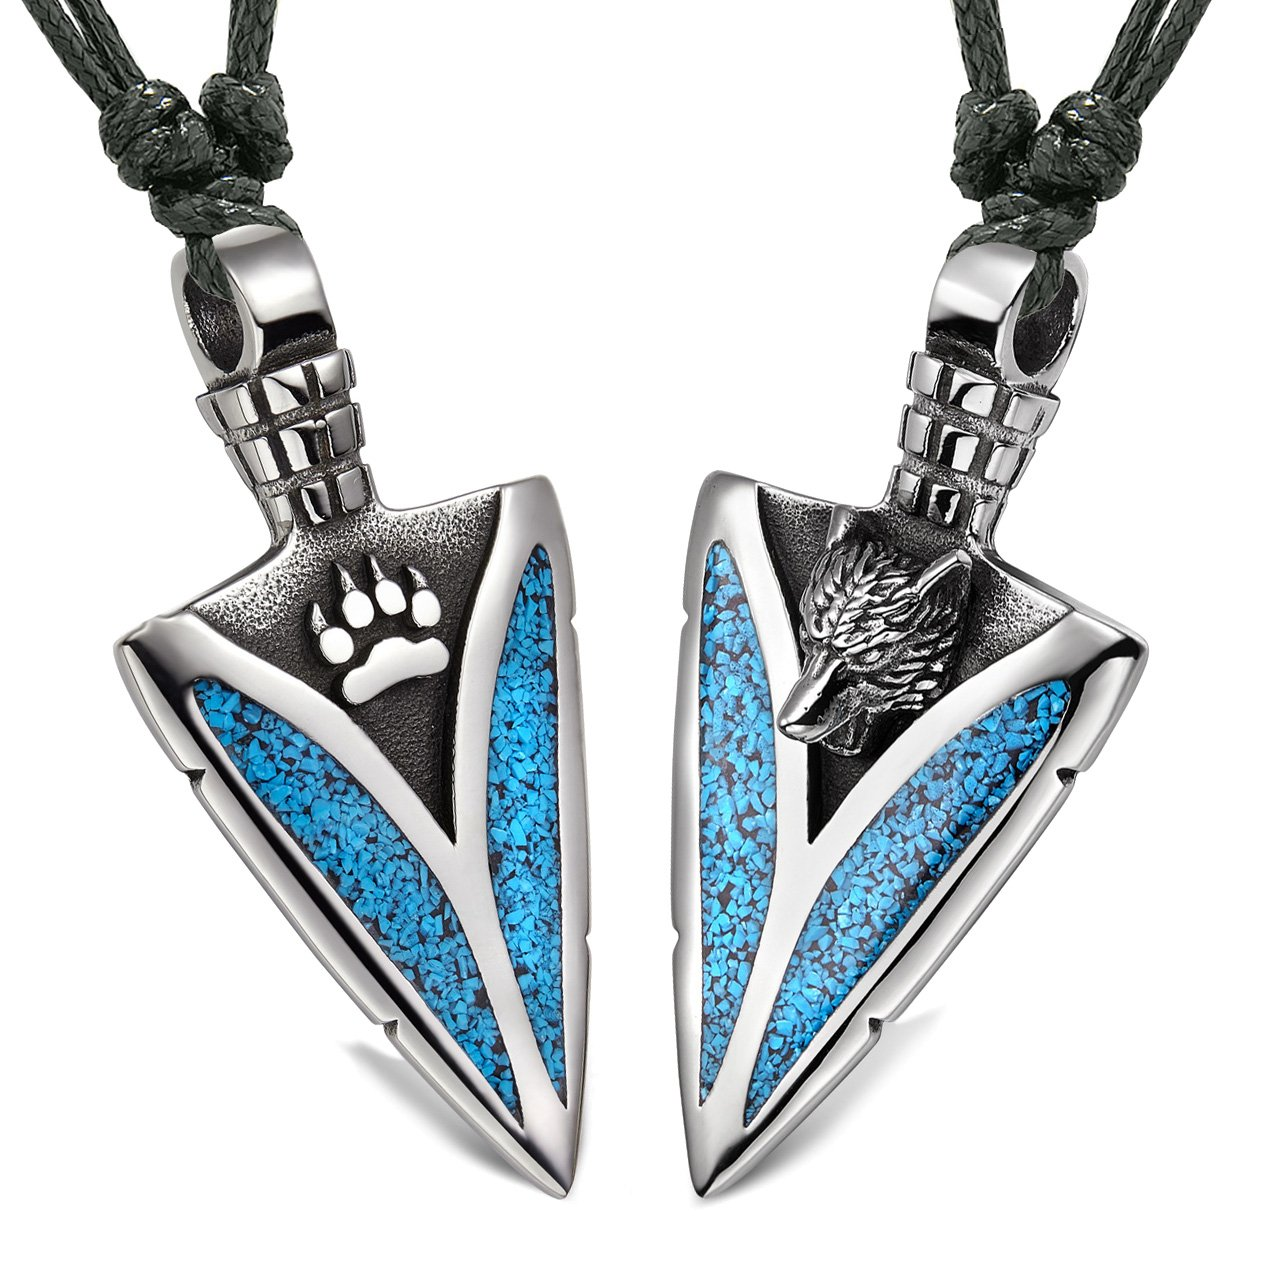 Arrowhead Howling Wolf and Paw Love Couples Best Friends Amulets Simulated Turquoise Adjustable Necklaces